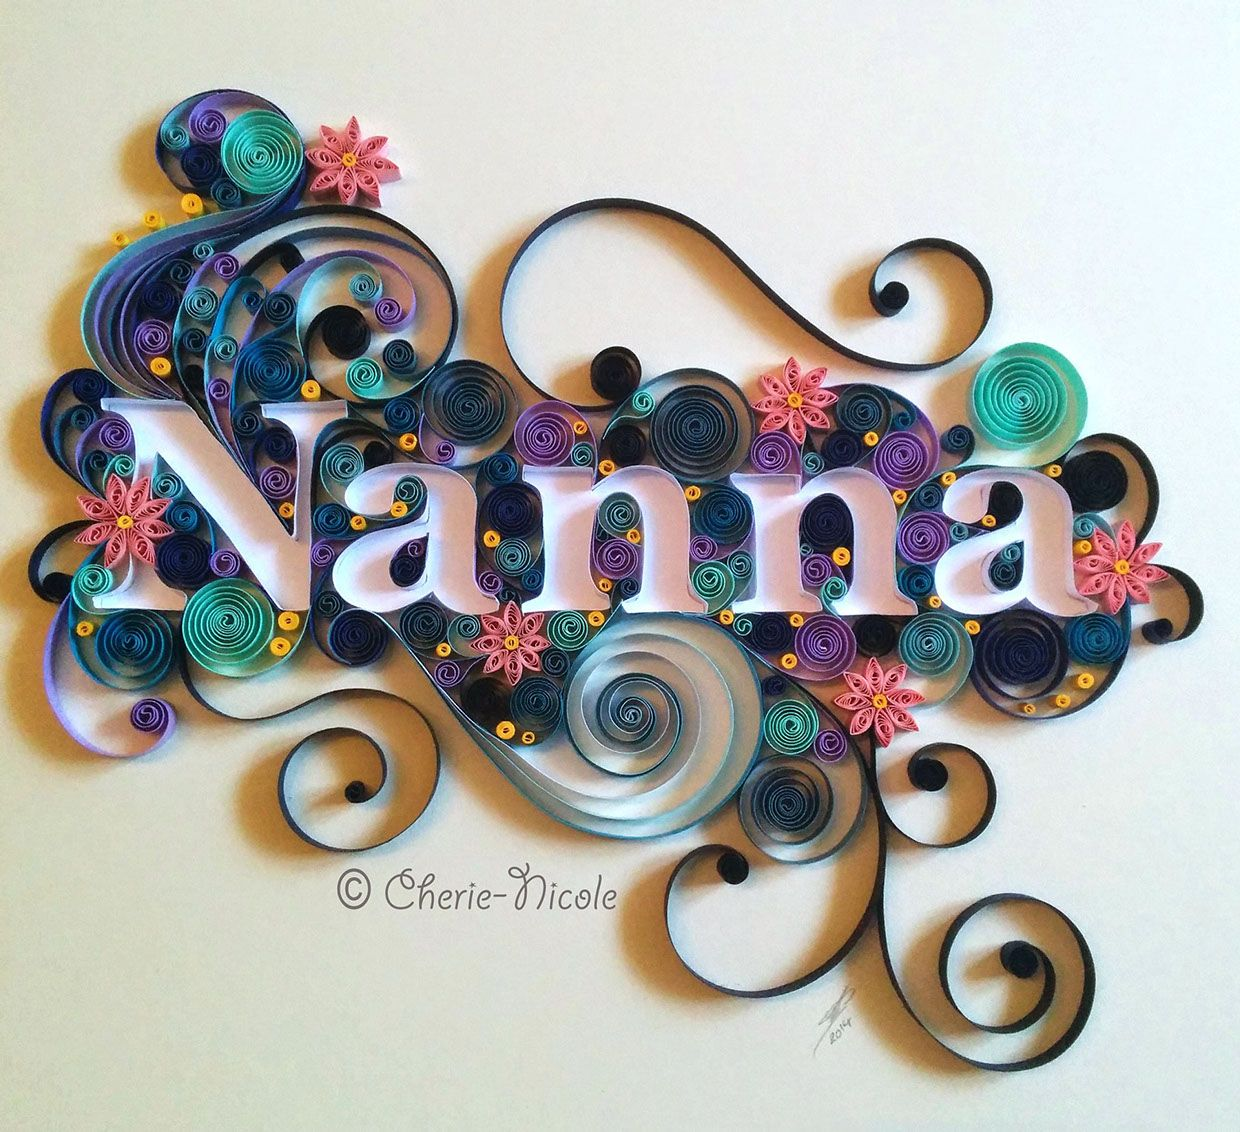 quilled name design awesome quilling projects pinterest bastelarbeiten schatz und quilling. Black Bedroom Furniture Sets. Home Design Ideas